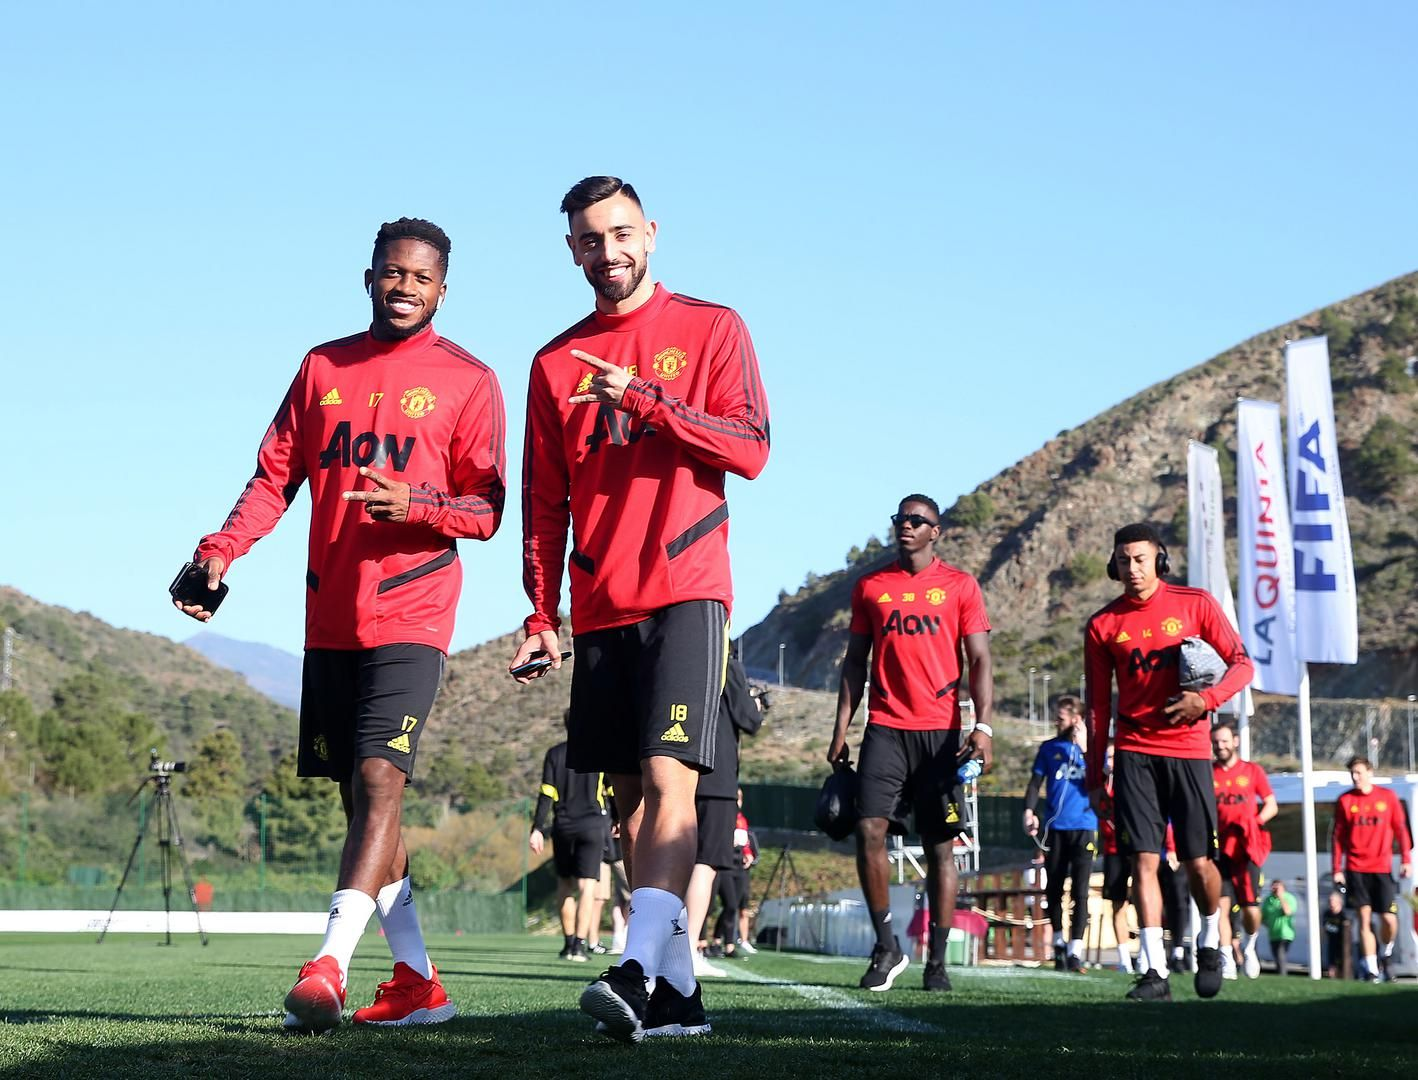 Day Two Of Man Utd Training In Spain 10 February 2020 Manchester United In 2020 Manchester United Manchester United Training Manchester United Wallpaper